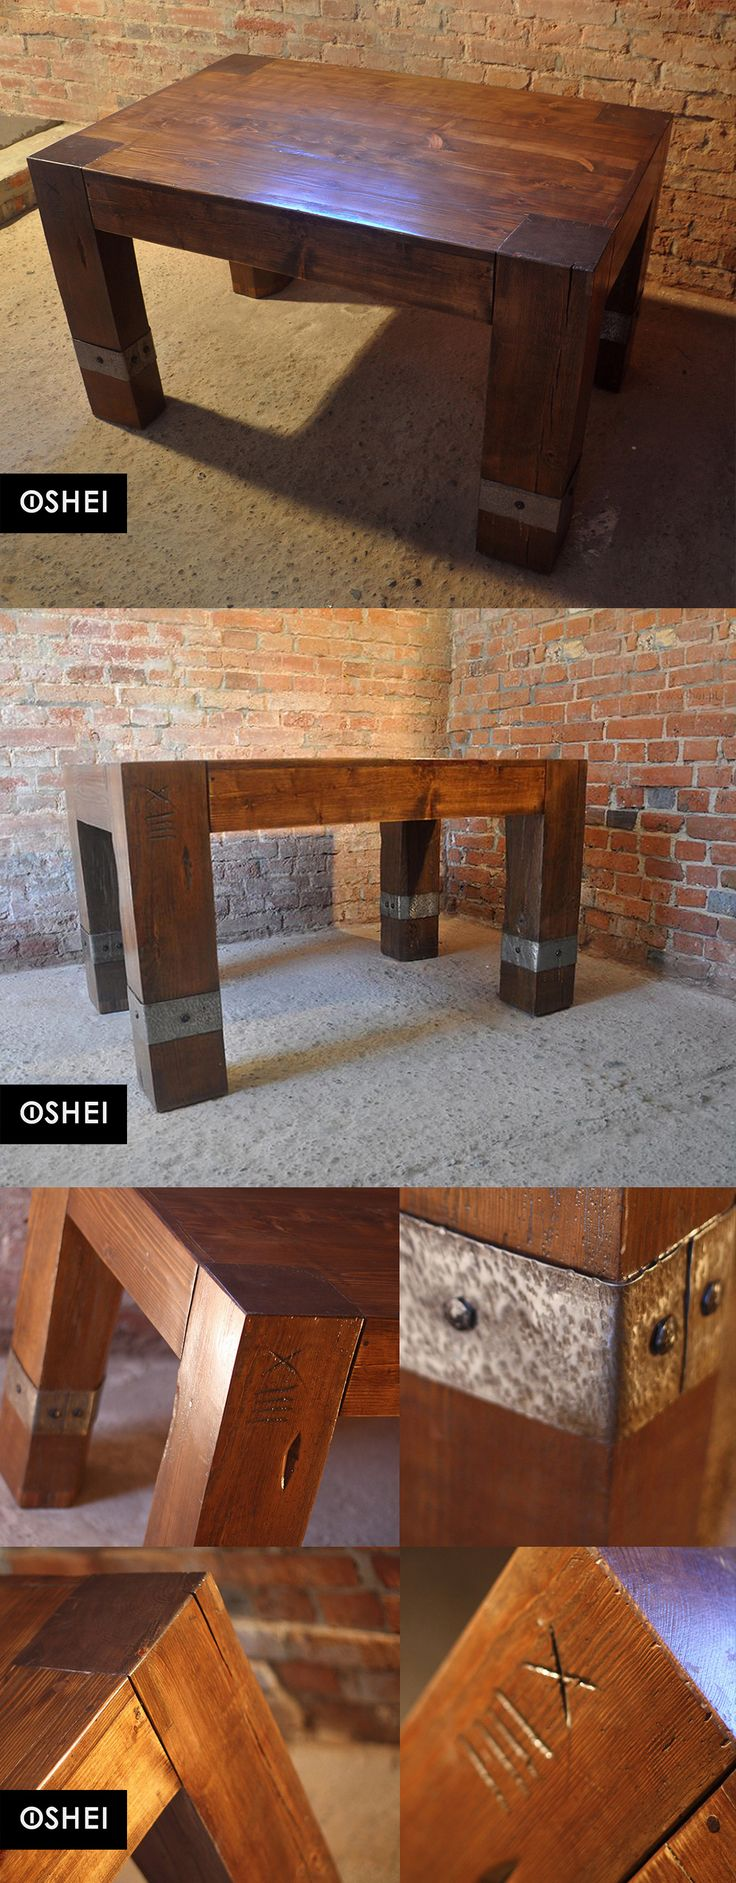 Massive OSHEI table made of solid pine wood, obtained from the restored house built in the years 1820-1830 in Leszno (Greater Poland). The wood was supplemented with hand forged clamps, finished with forged nails. The table fits perfectly as a dining or kitchen It is a unique model. ON THE LEG OF THE UNIT WAS PRESERVED  ORIGINAL NINETEENTH CENTURY CARPENTER'S MARKING (DIGIT XIIII - fourteen) #oldwood